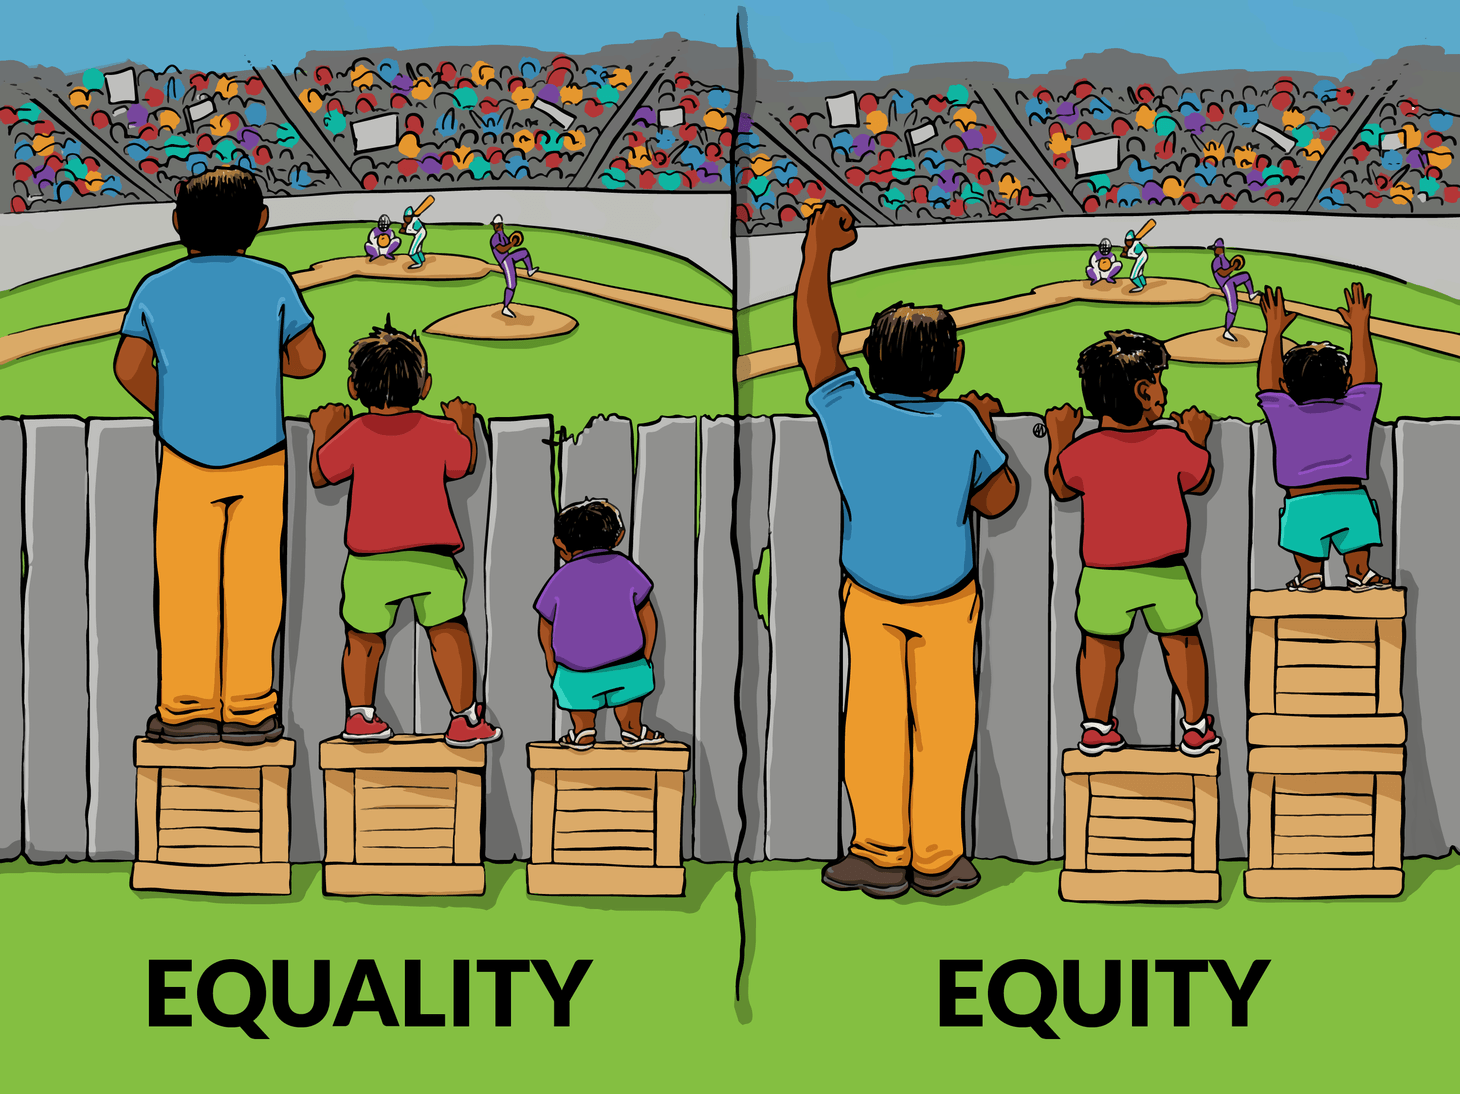 Three people standing on the same size boxes looking over a fence with the shortest person unable to see labeled Equality.  Another picture of the same three people standing on boxes to make them each able to see over the fence labeled Equity